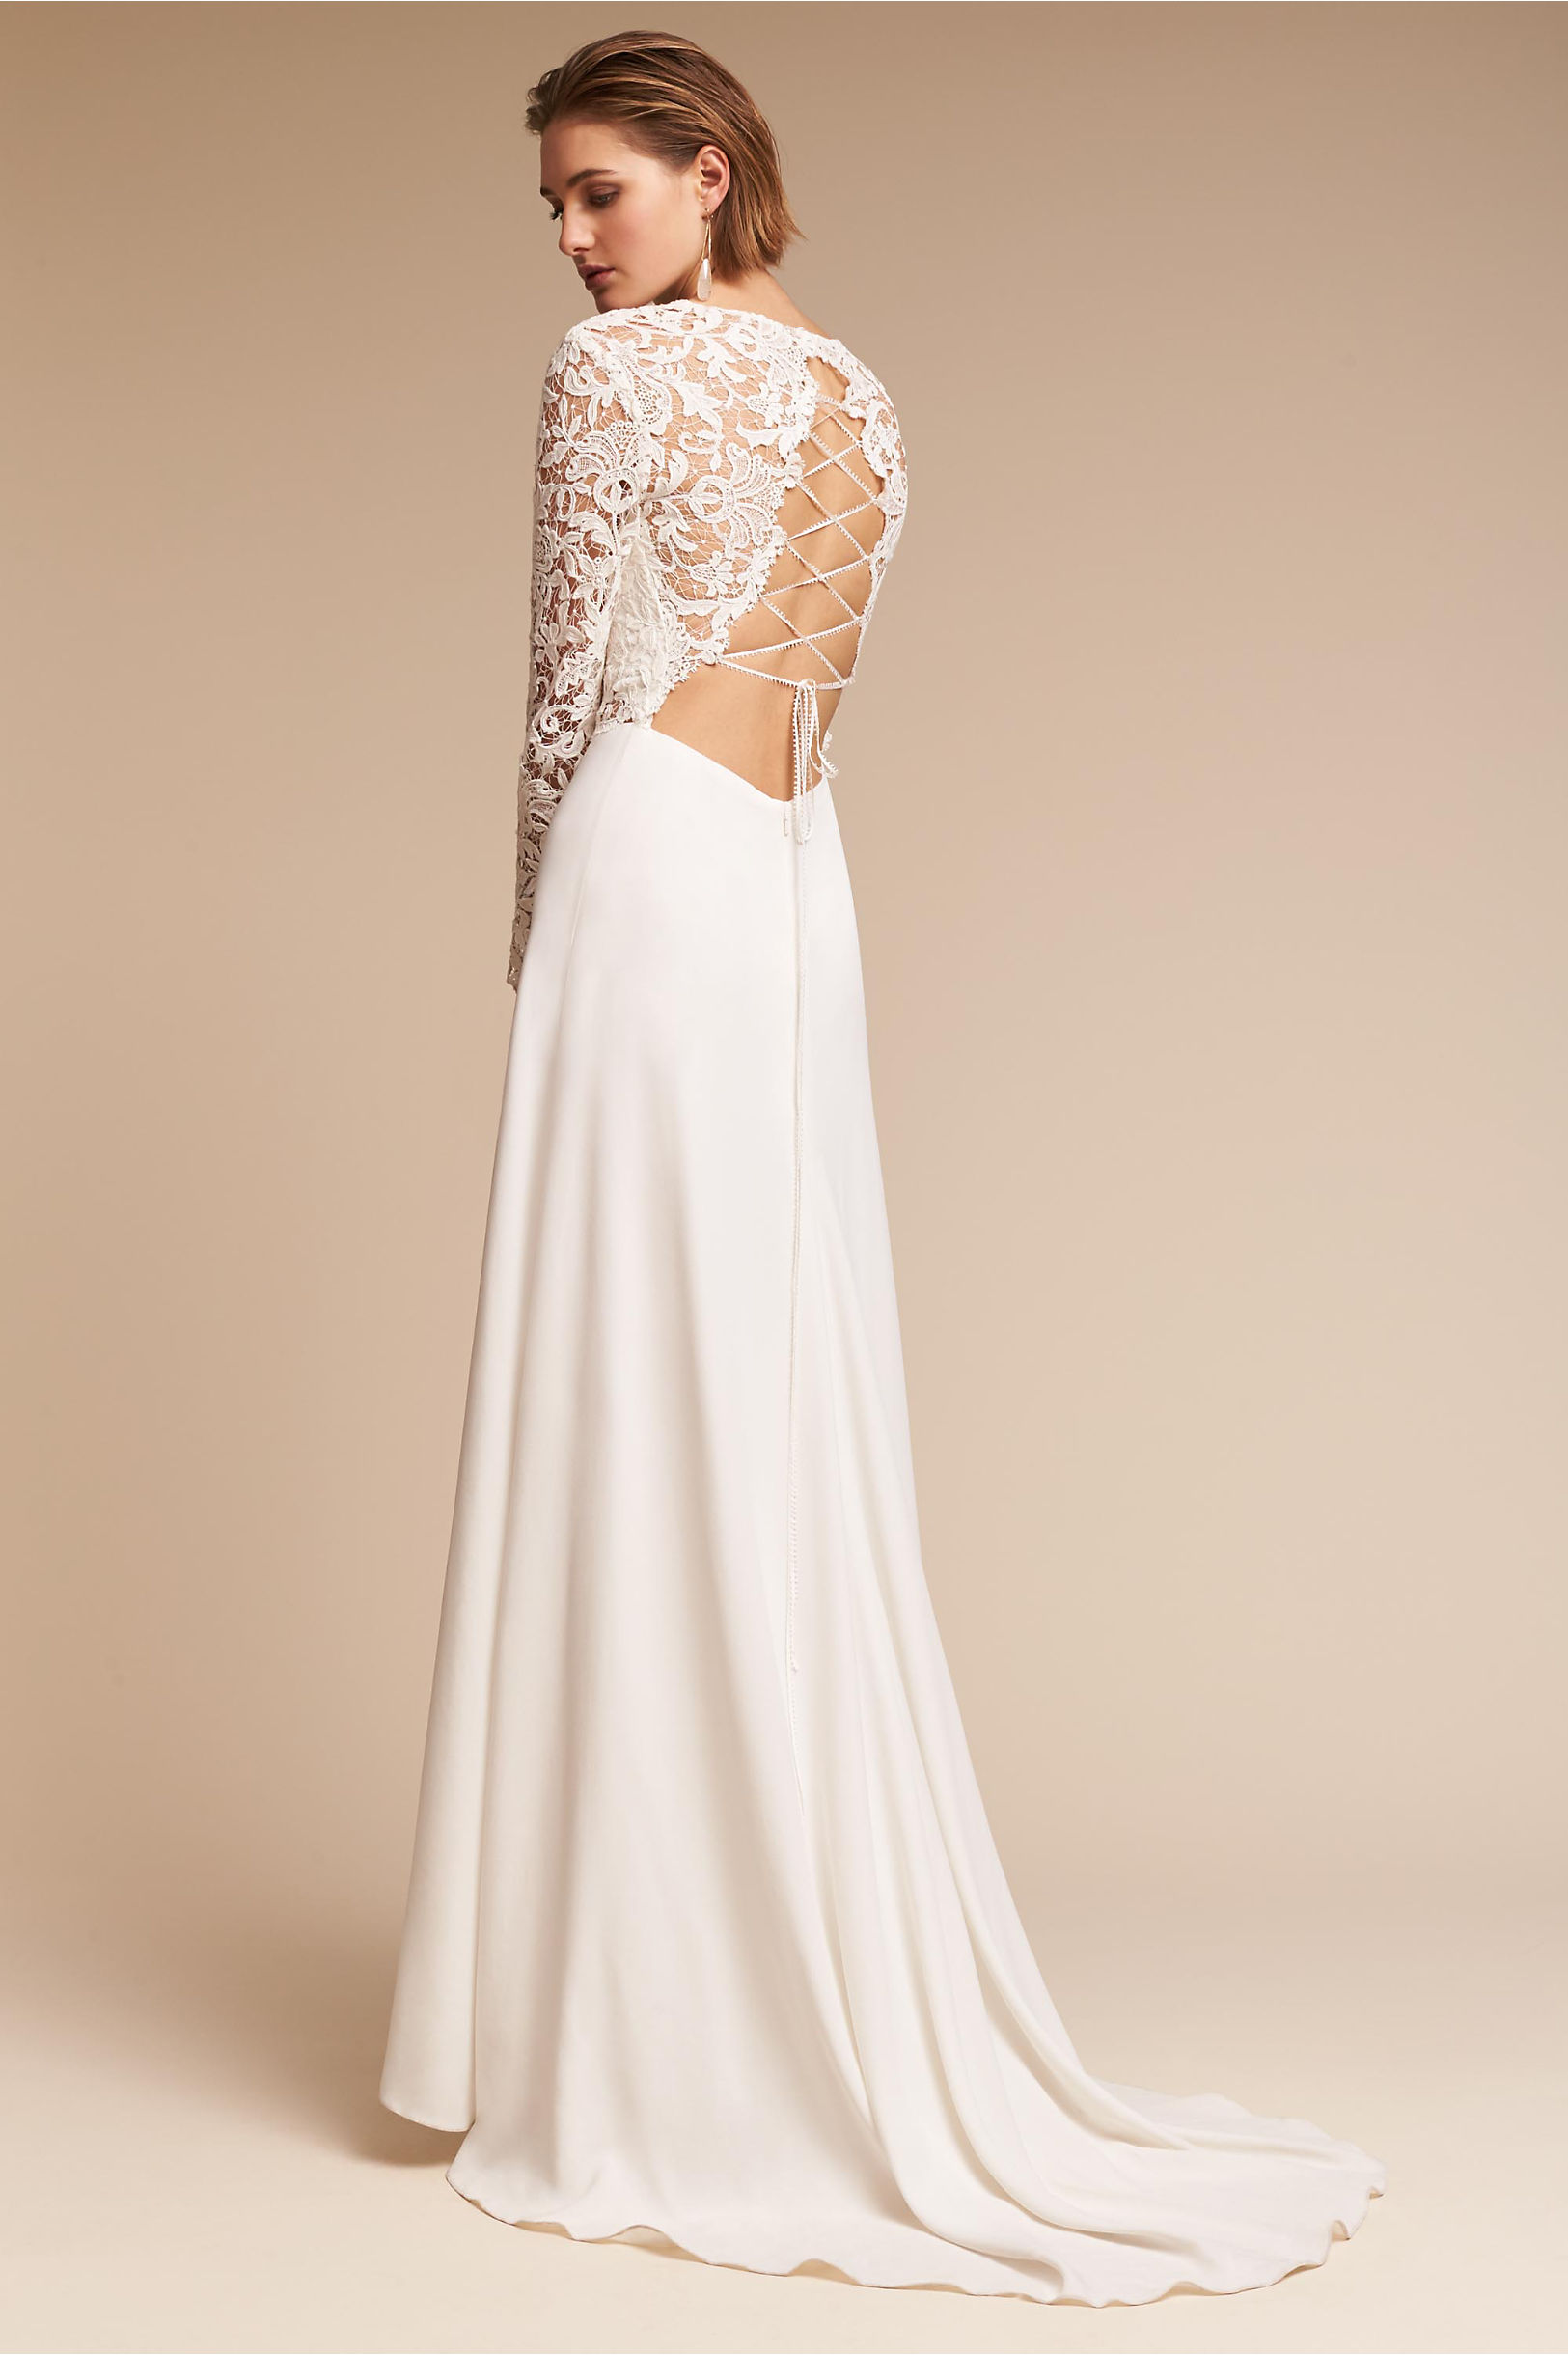 Shop wedding dresses on sale wedding dress clearance bhldn forsyth gown ombrellifo Image collections